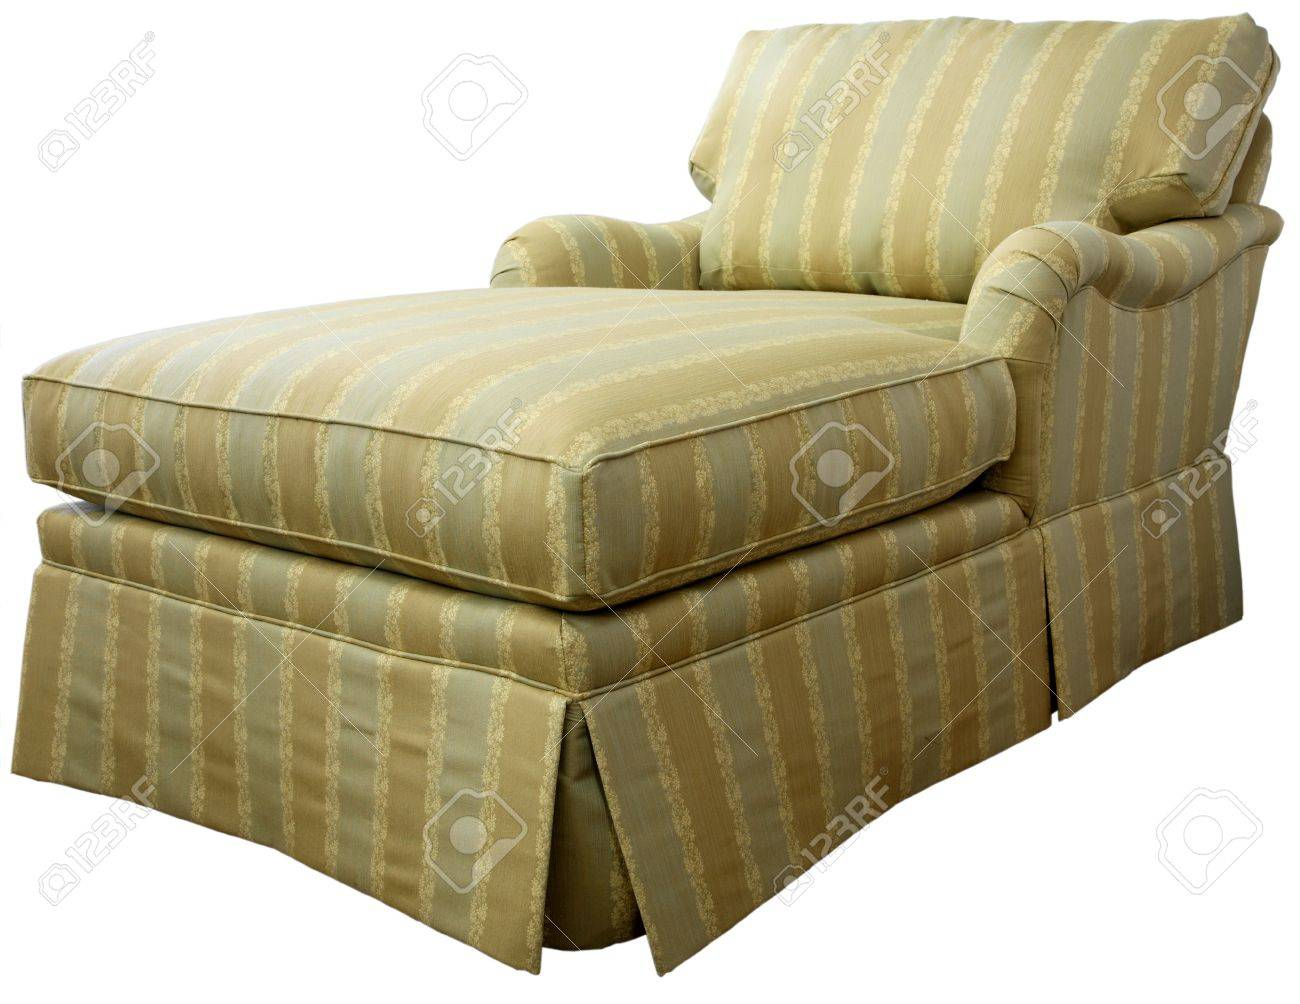 Excellent Traditional Skirted Style Chaise Lounge Overstuffed Sofa Alphanode Cool Chair Designs And Ideas Alphanodeonline